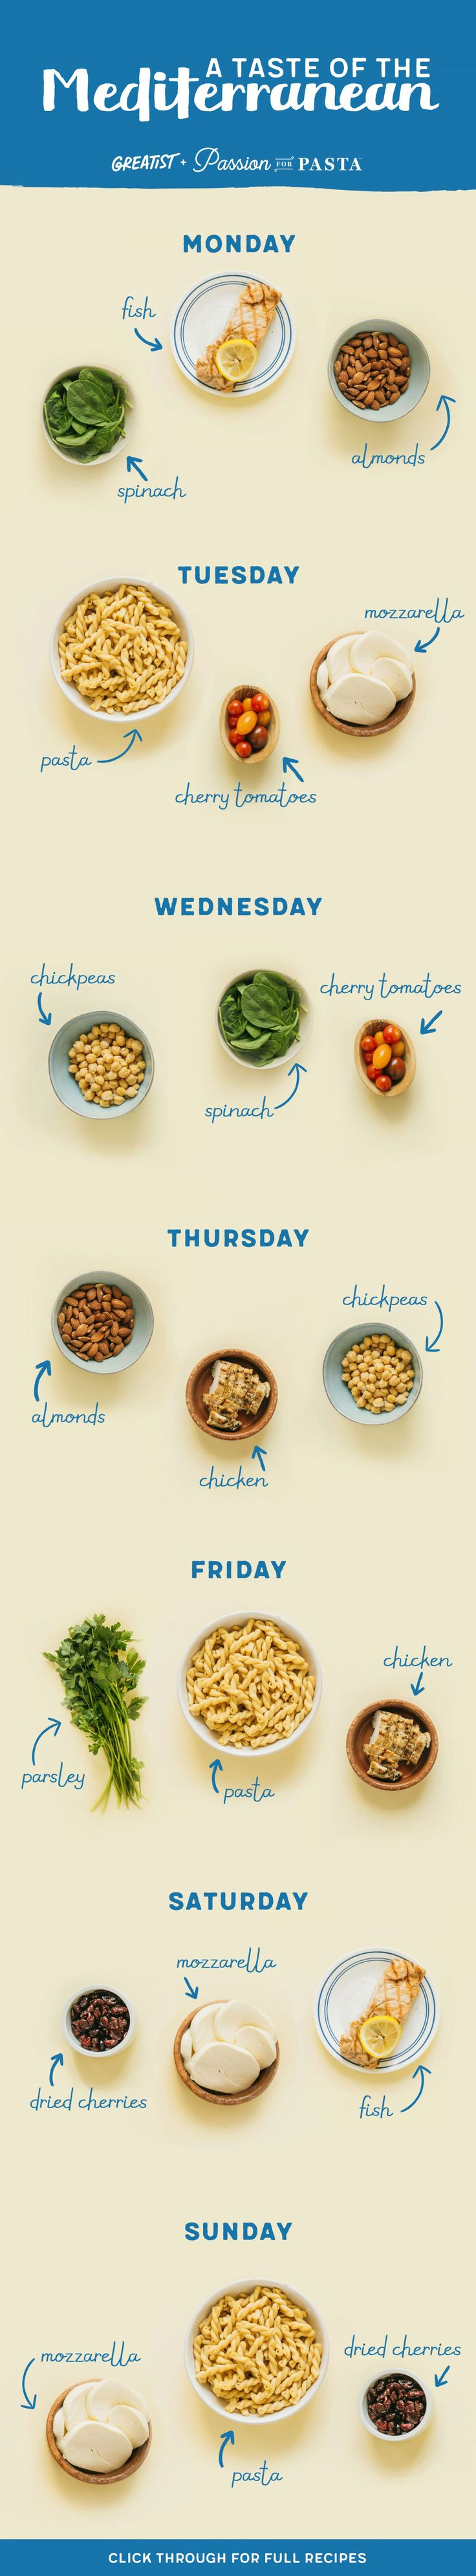 BRB, off to eat all the pasta. #greatist https://greatist.com/eat/mediterranean-diet-recipes-for-a-week